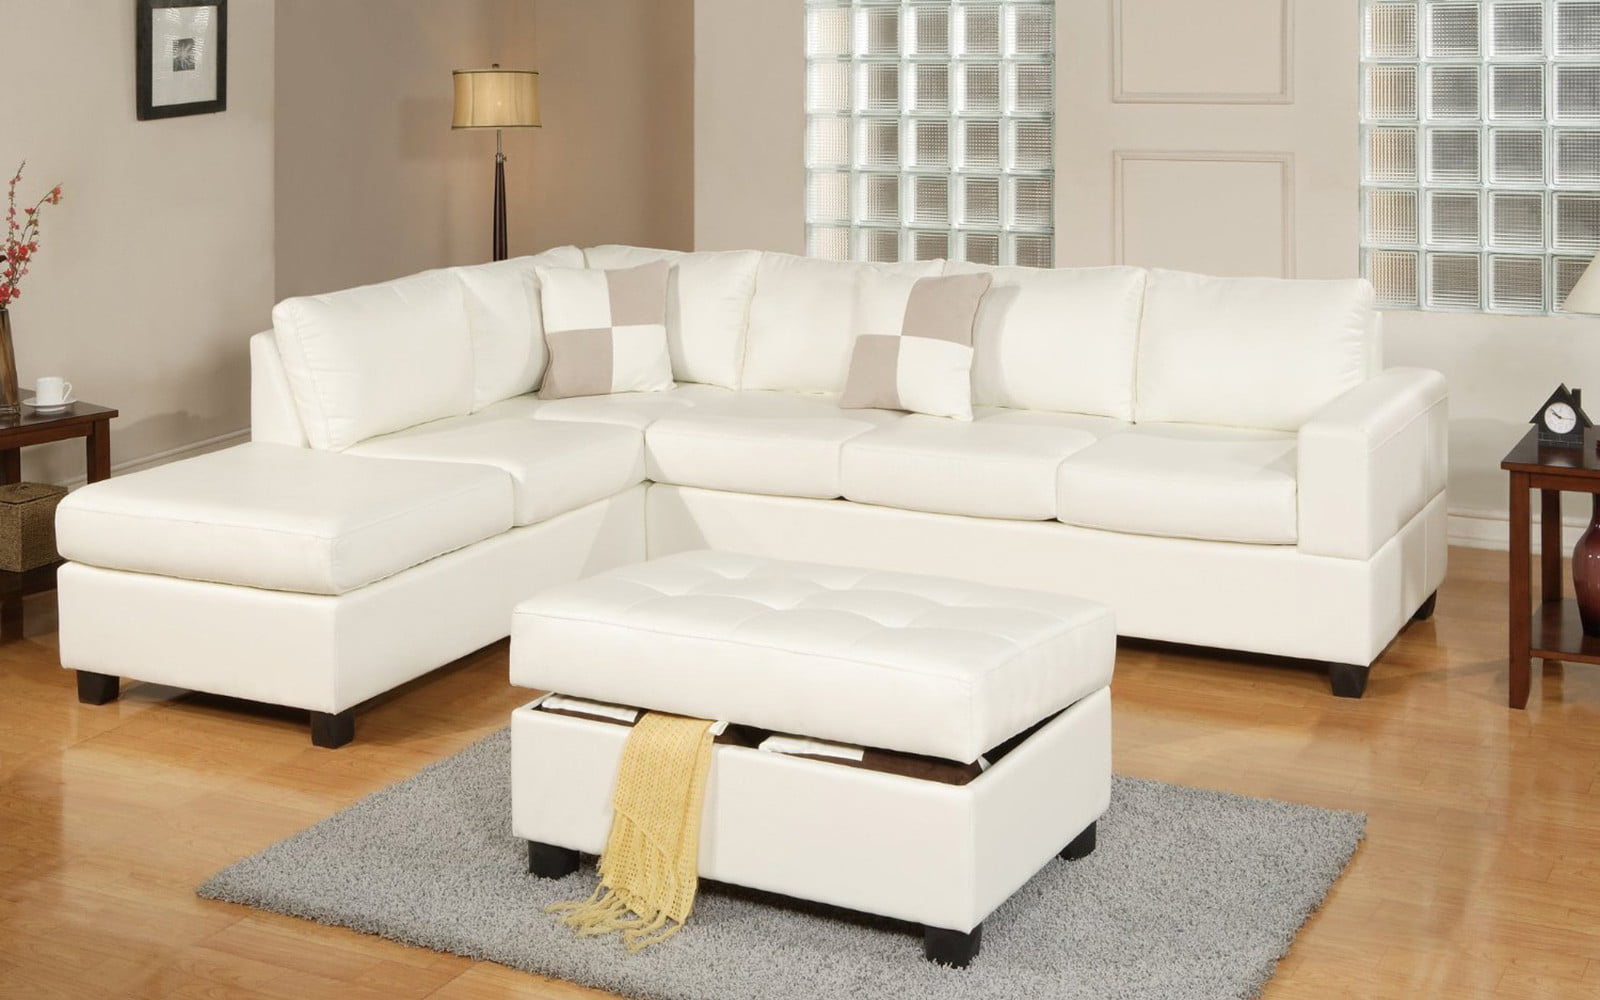 3 Piece Modern Reversible Tufted Bonded Leather Sectional Sofa